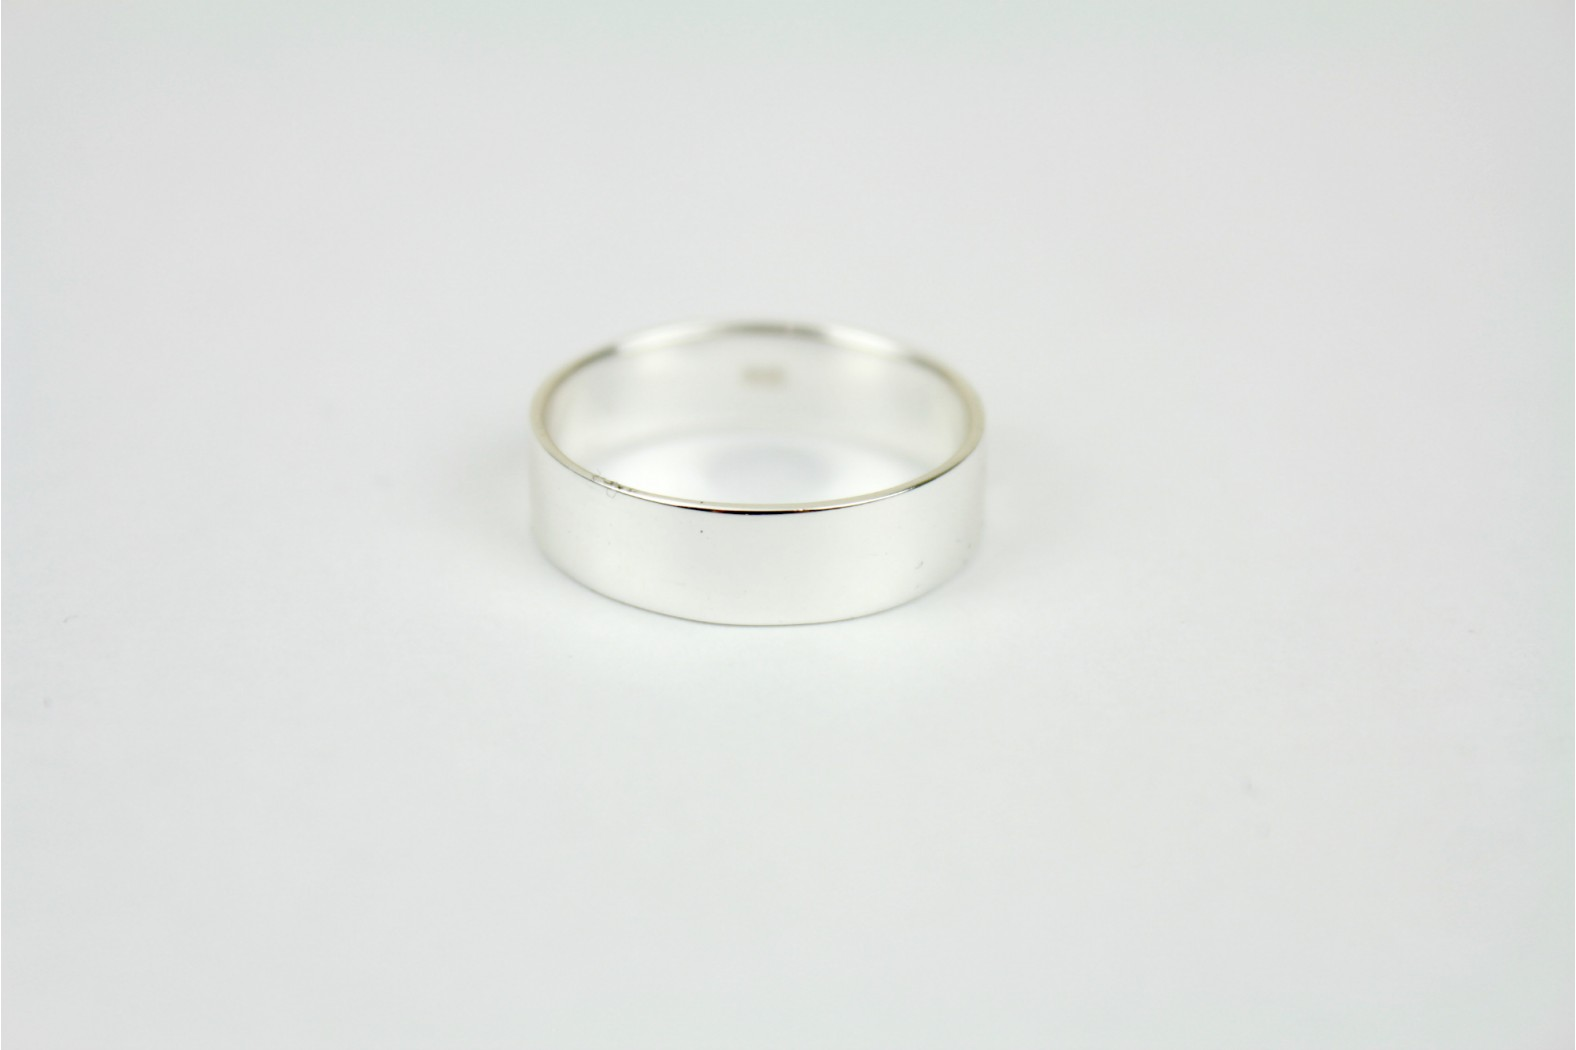 Polished silver chunky plain band style size 9 or R